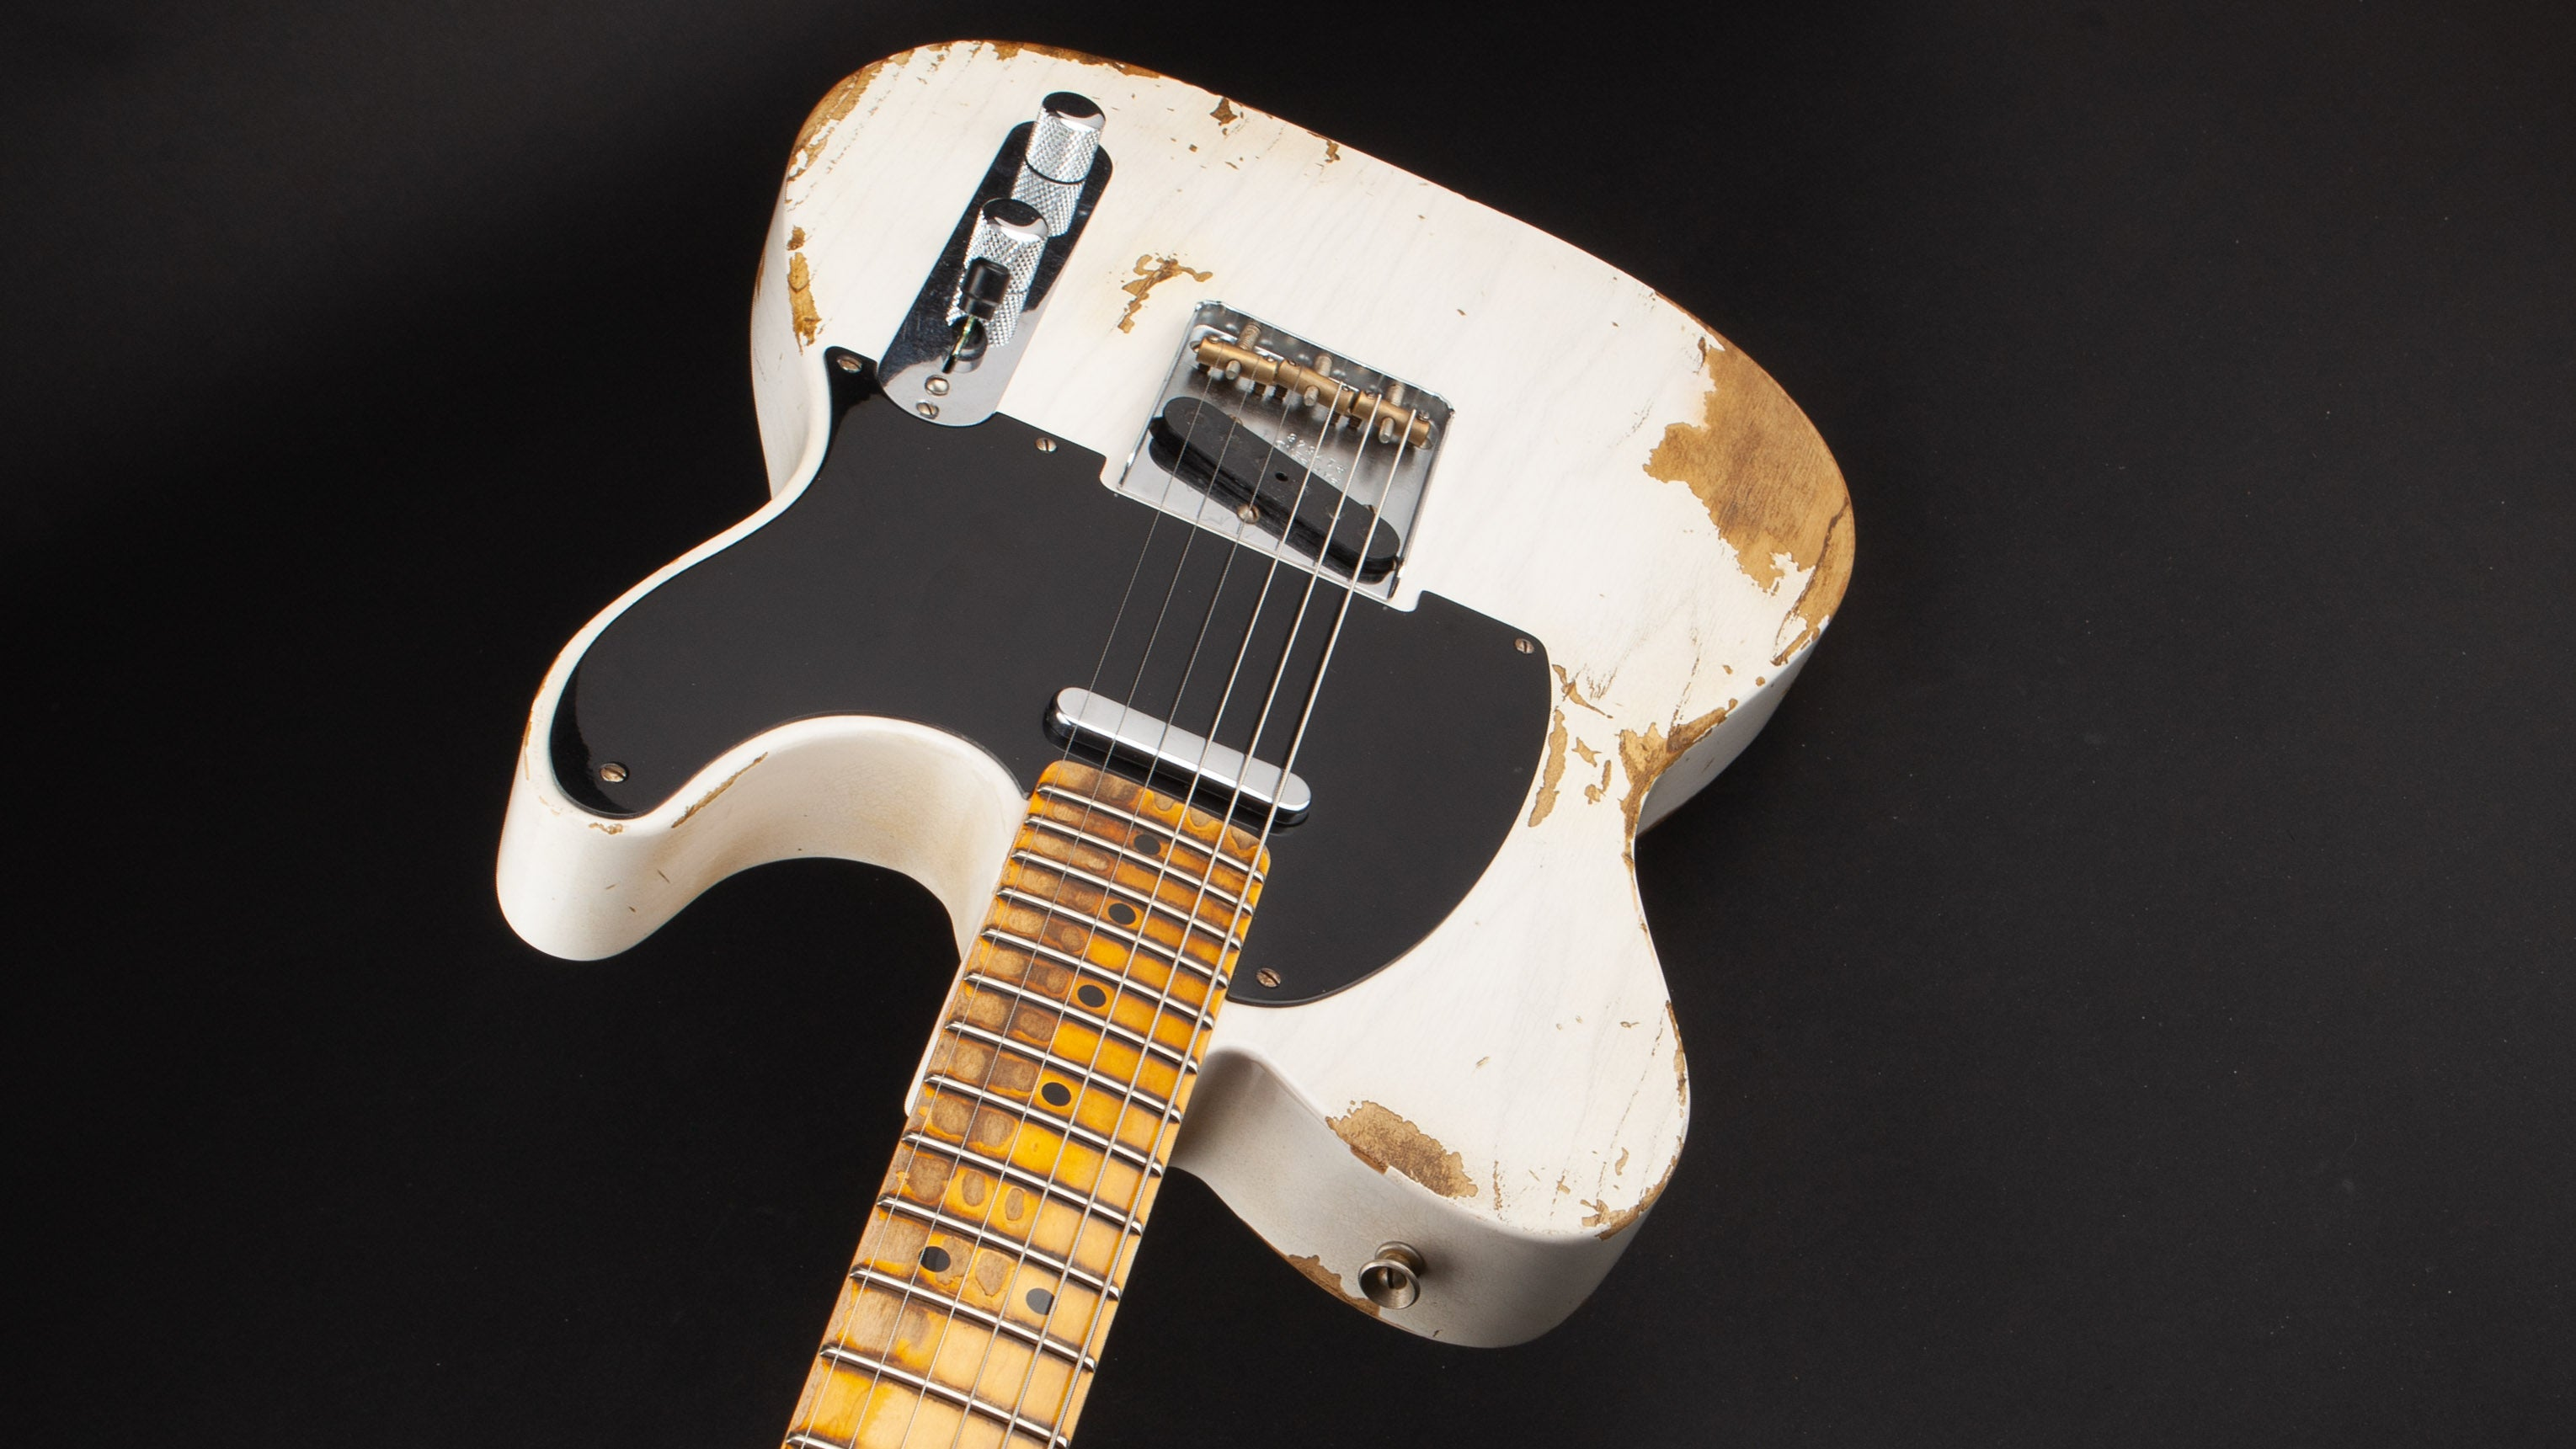 Fender Custom Shop:51 Nocaster Heavy Relic White Blonde #R17548